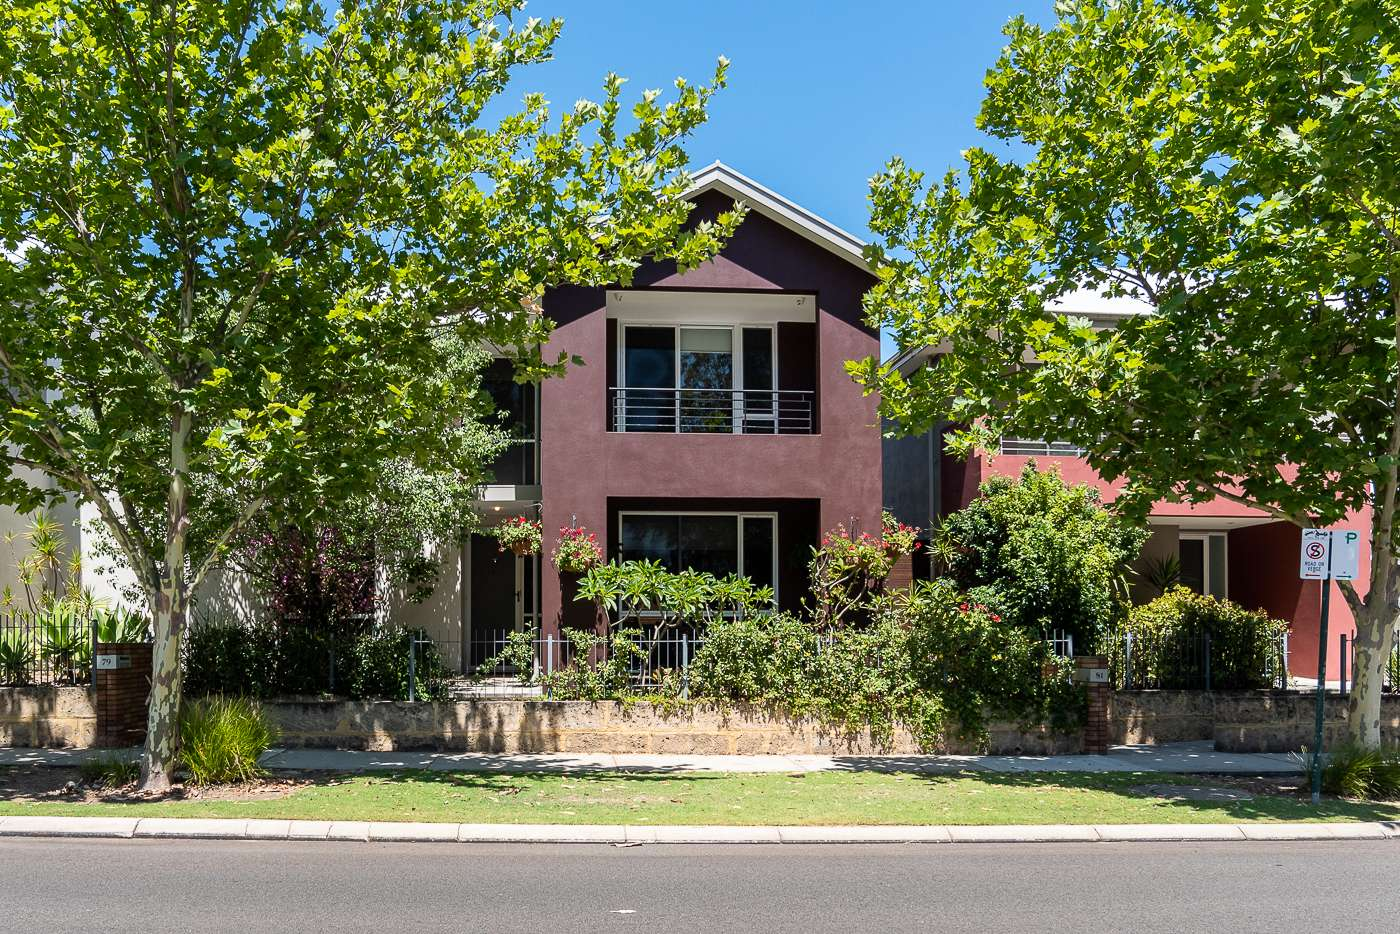 Main view of Homely house listing, 79 Victoria Park Drive, Burswood WA 6100